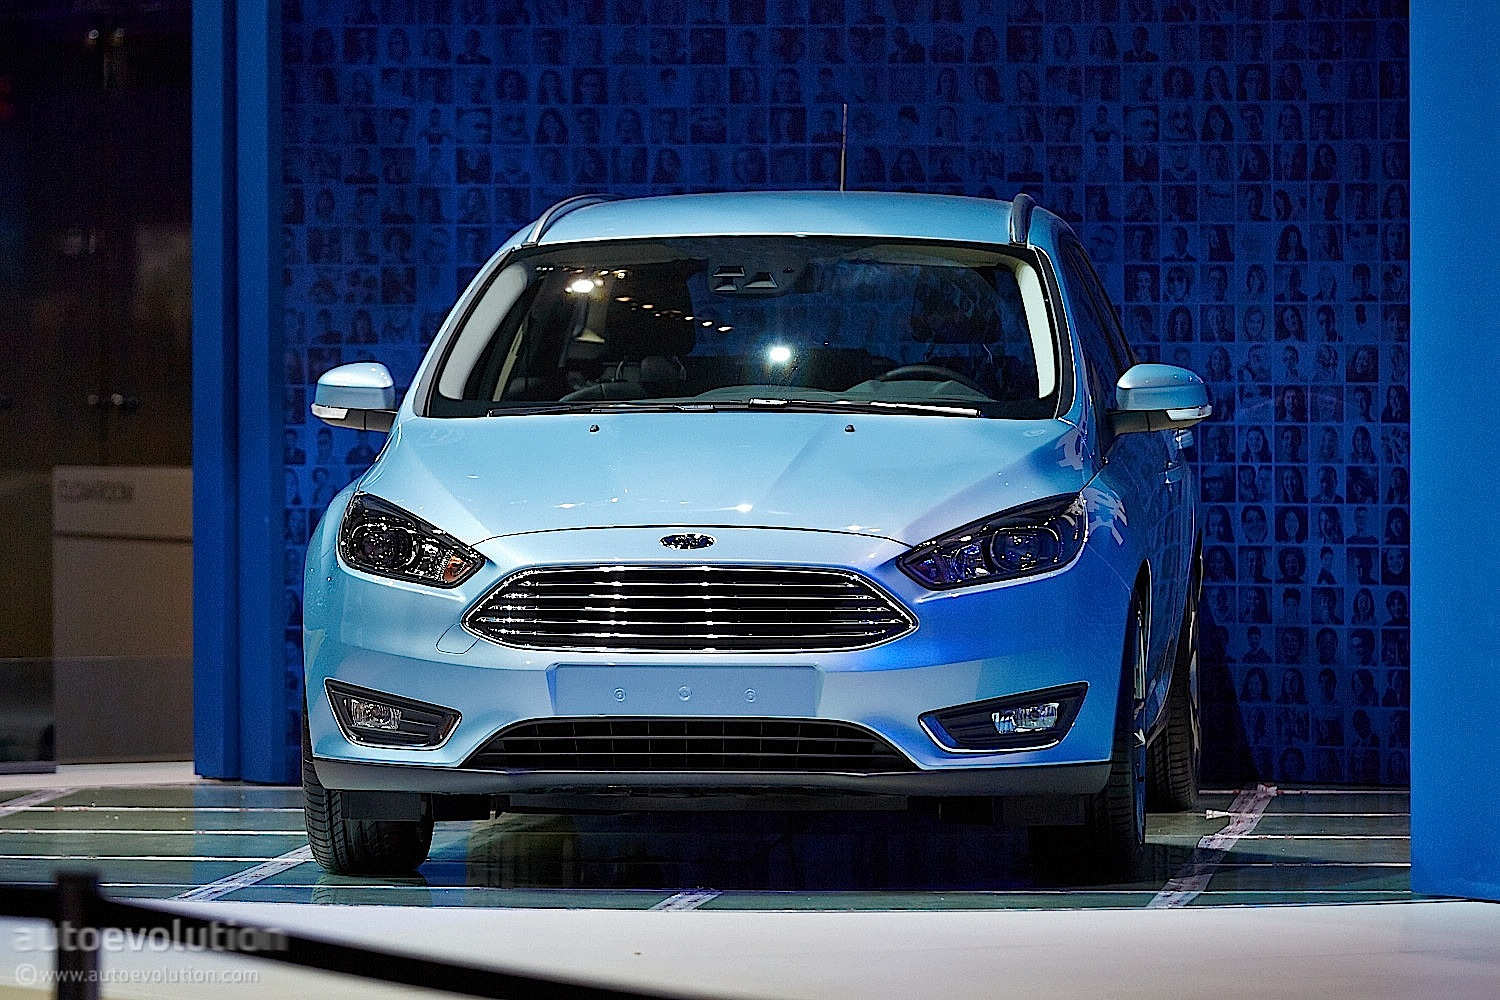 2014 Ford Focus Hatchback Estate Bow In Geneva Live Photosupdate Motor Show